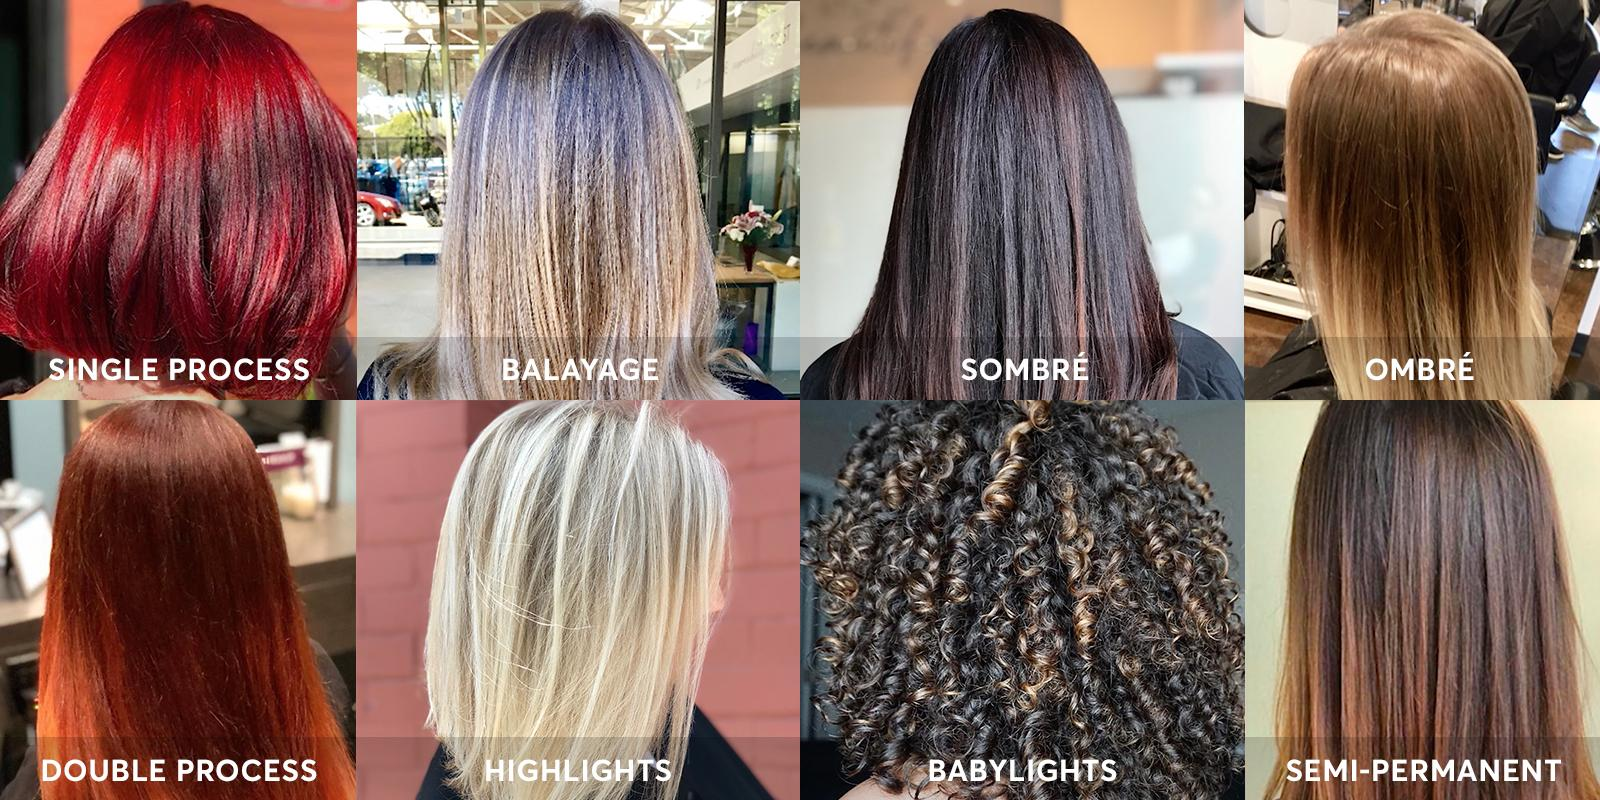 Does Permanent Hair Color Fadehair Color Products And